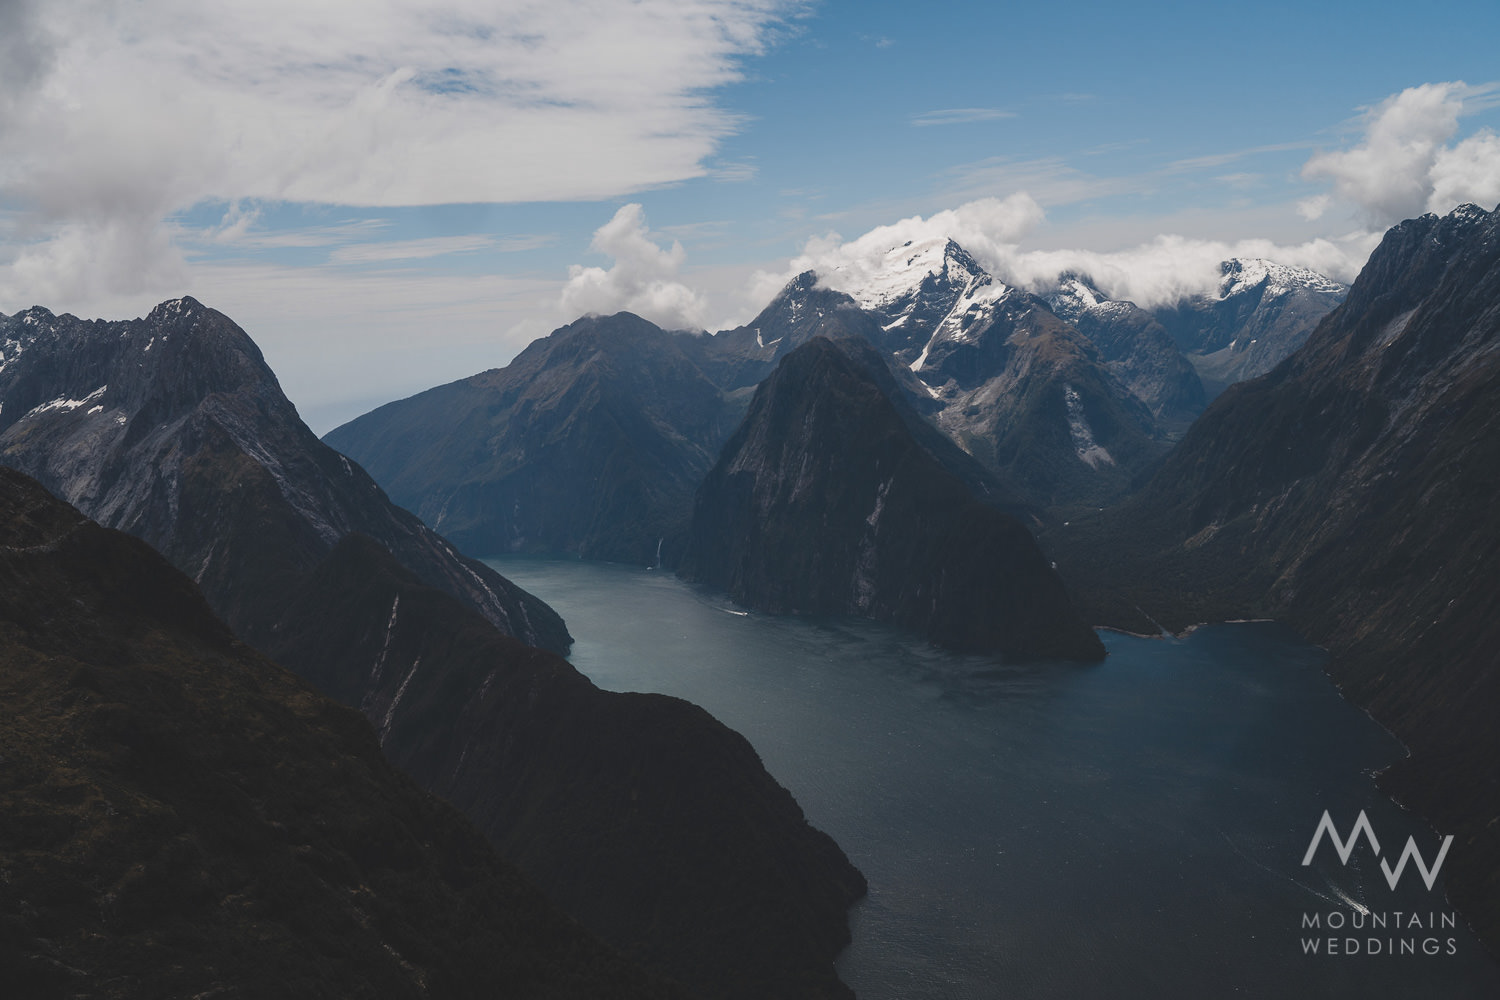 Milford Sound Mountain Weddings